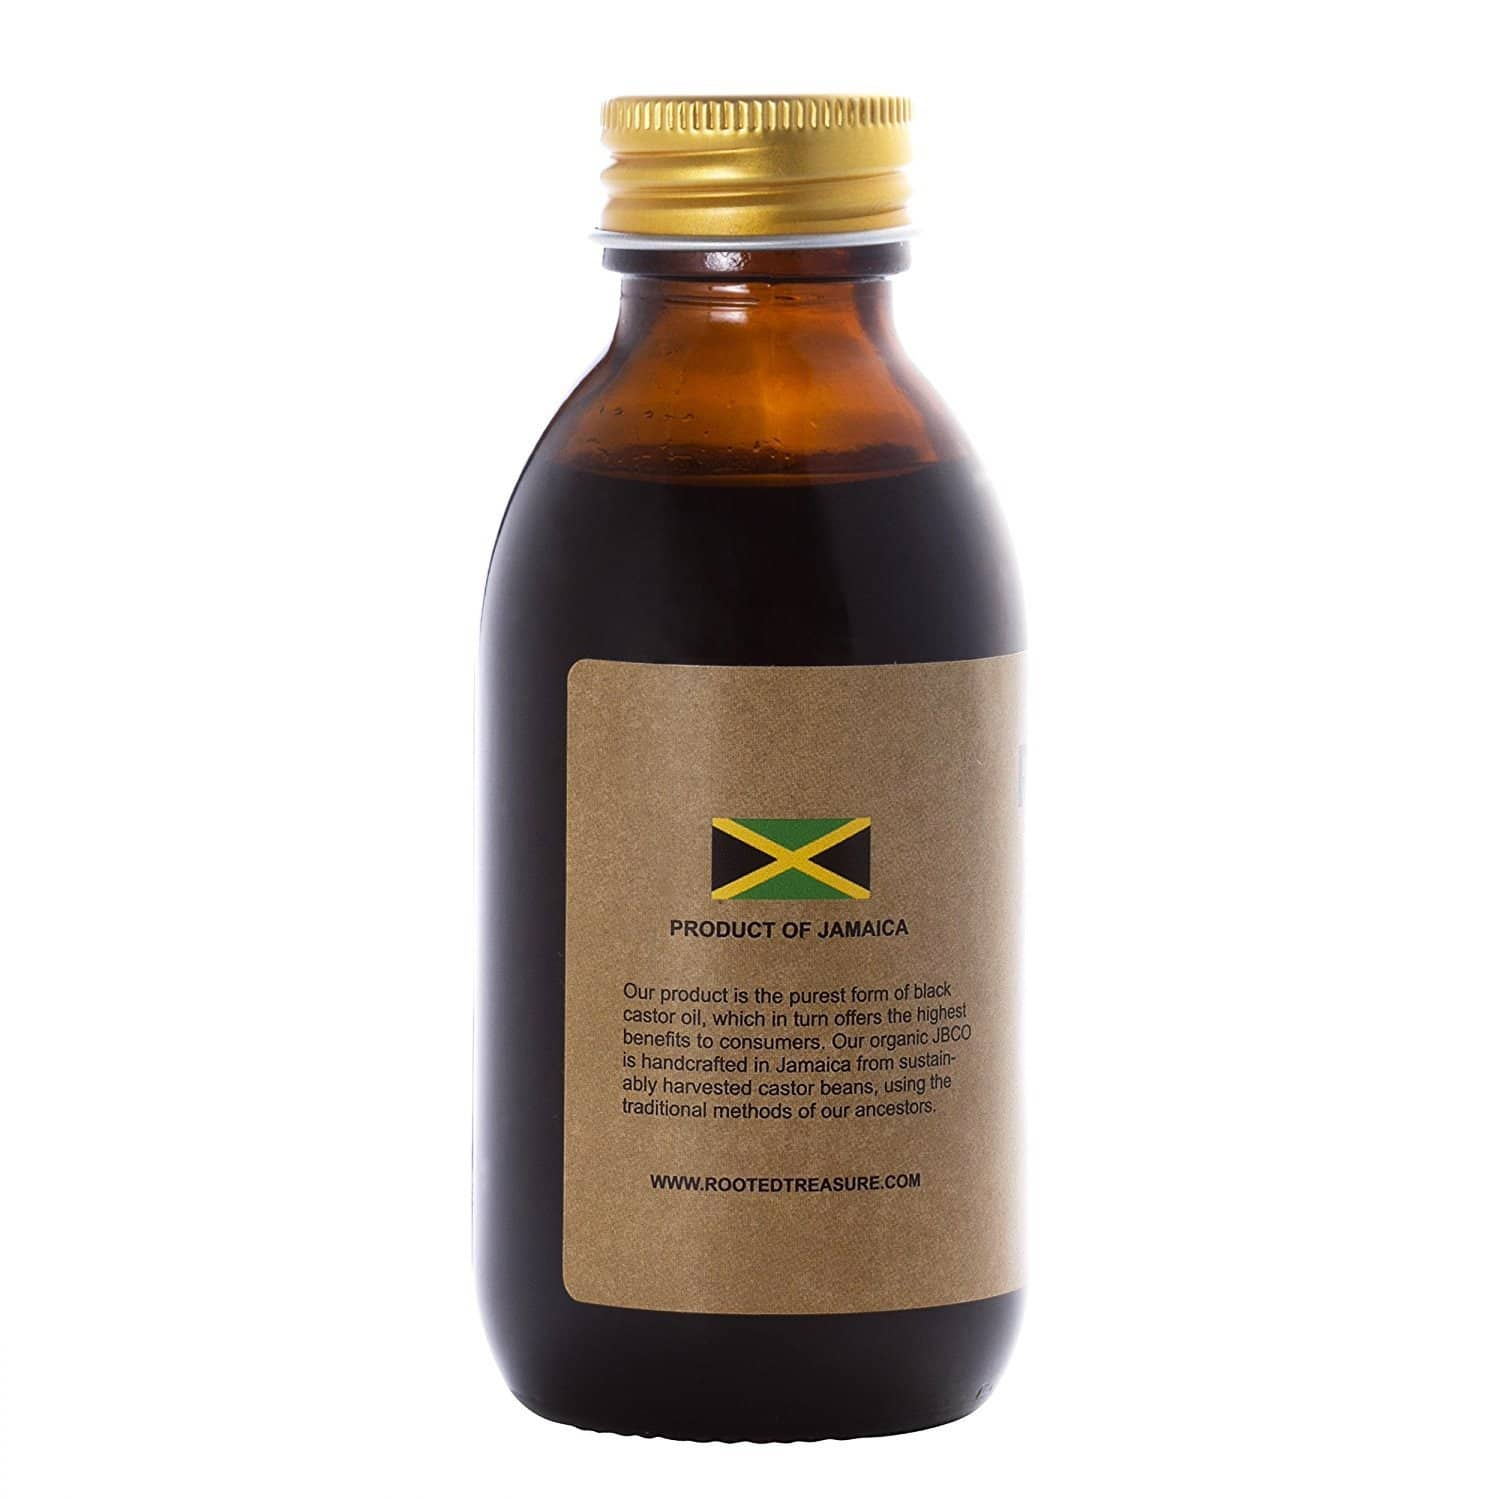 Organic Jamaican Black Castor Oil By Rooted Treasure: Review